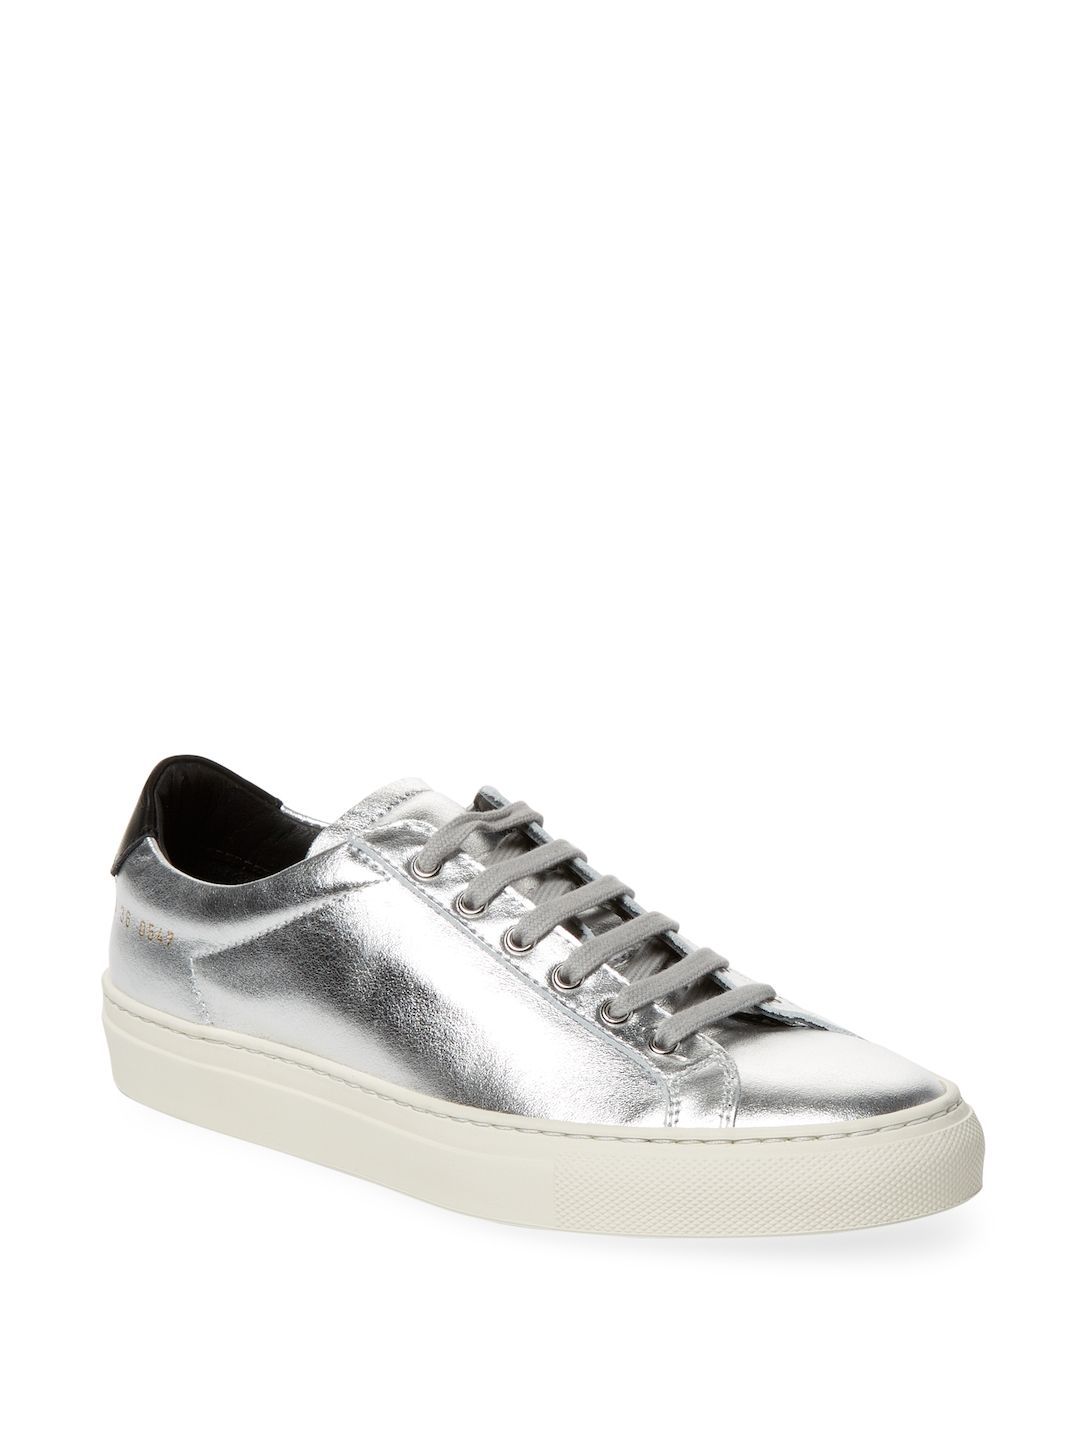 8d08582e20be COMMON PROJECTS WOMEN S LEATHER LOW-TOP SNEAKERS - SIZE 36.  commonprojects   shoes